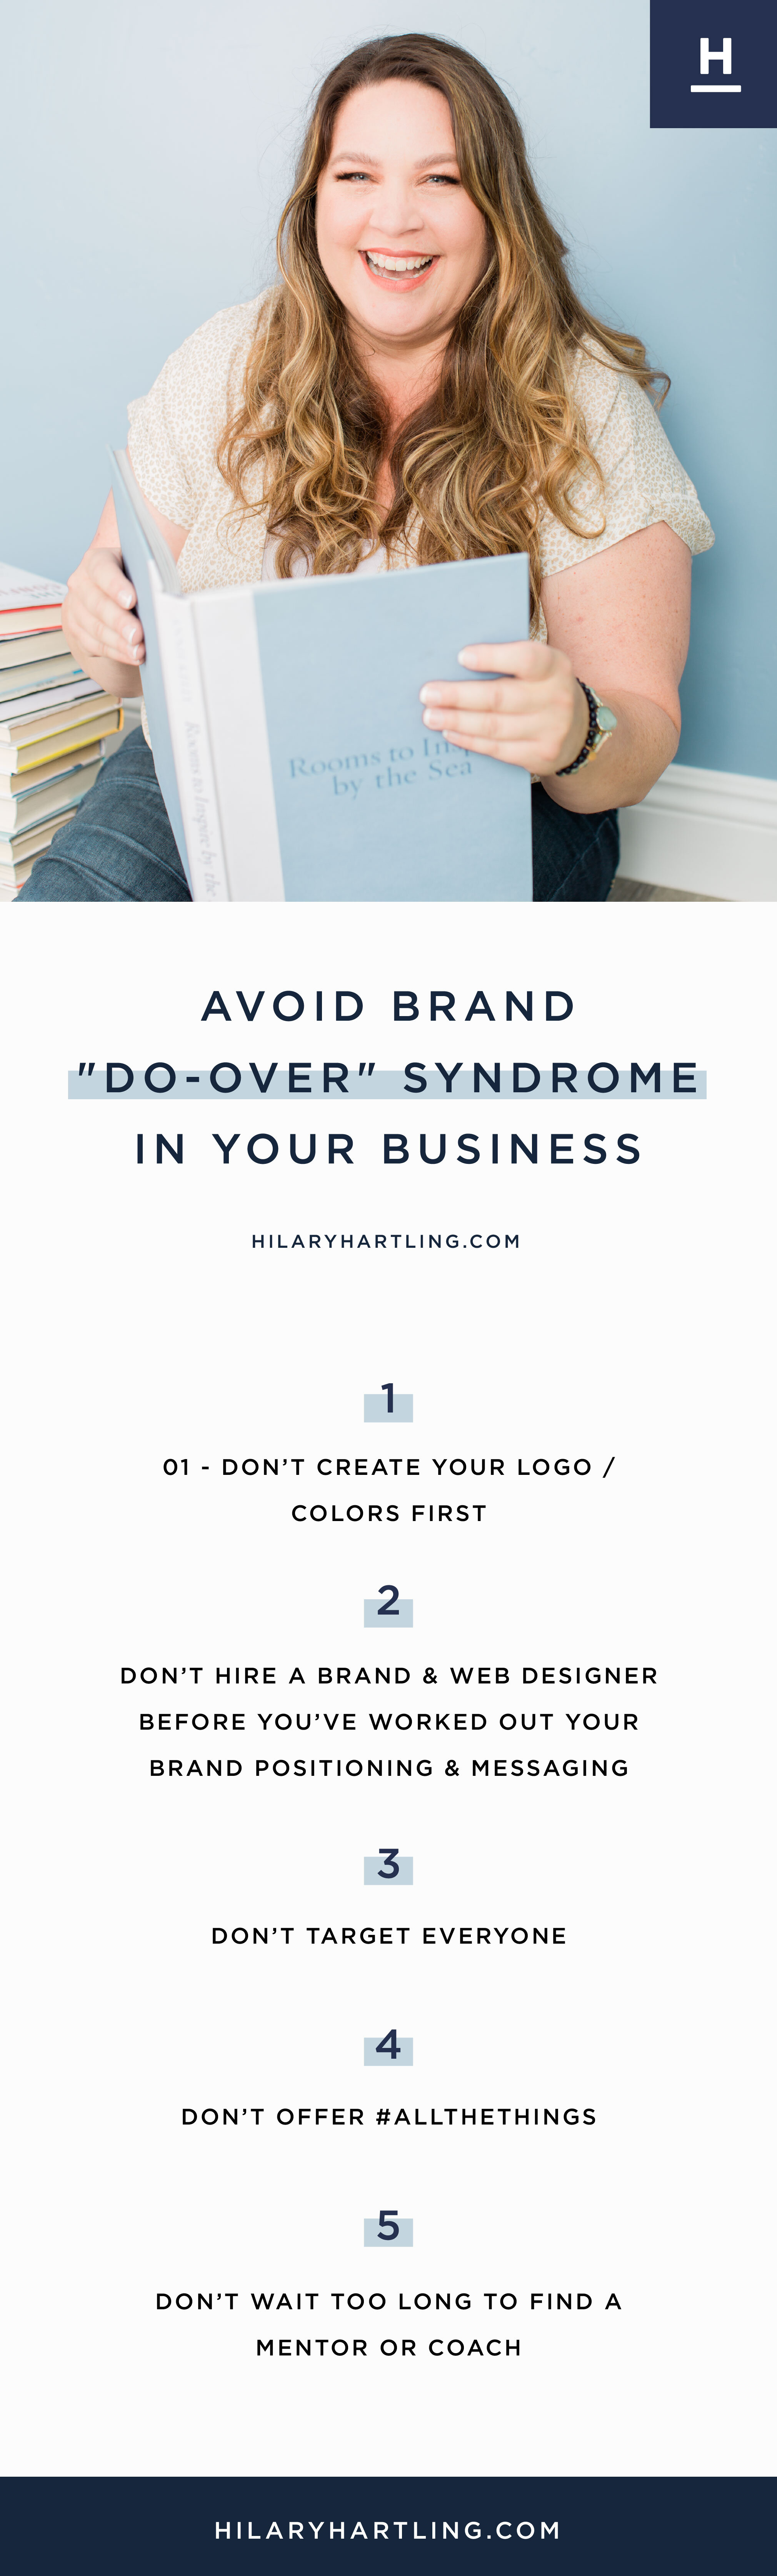 Avoid-Brand-'Do-Over'-Syndrome-In-Your-Business2.jpg